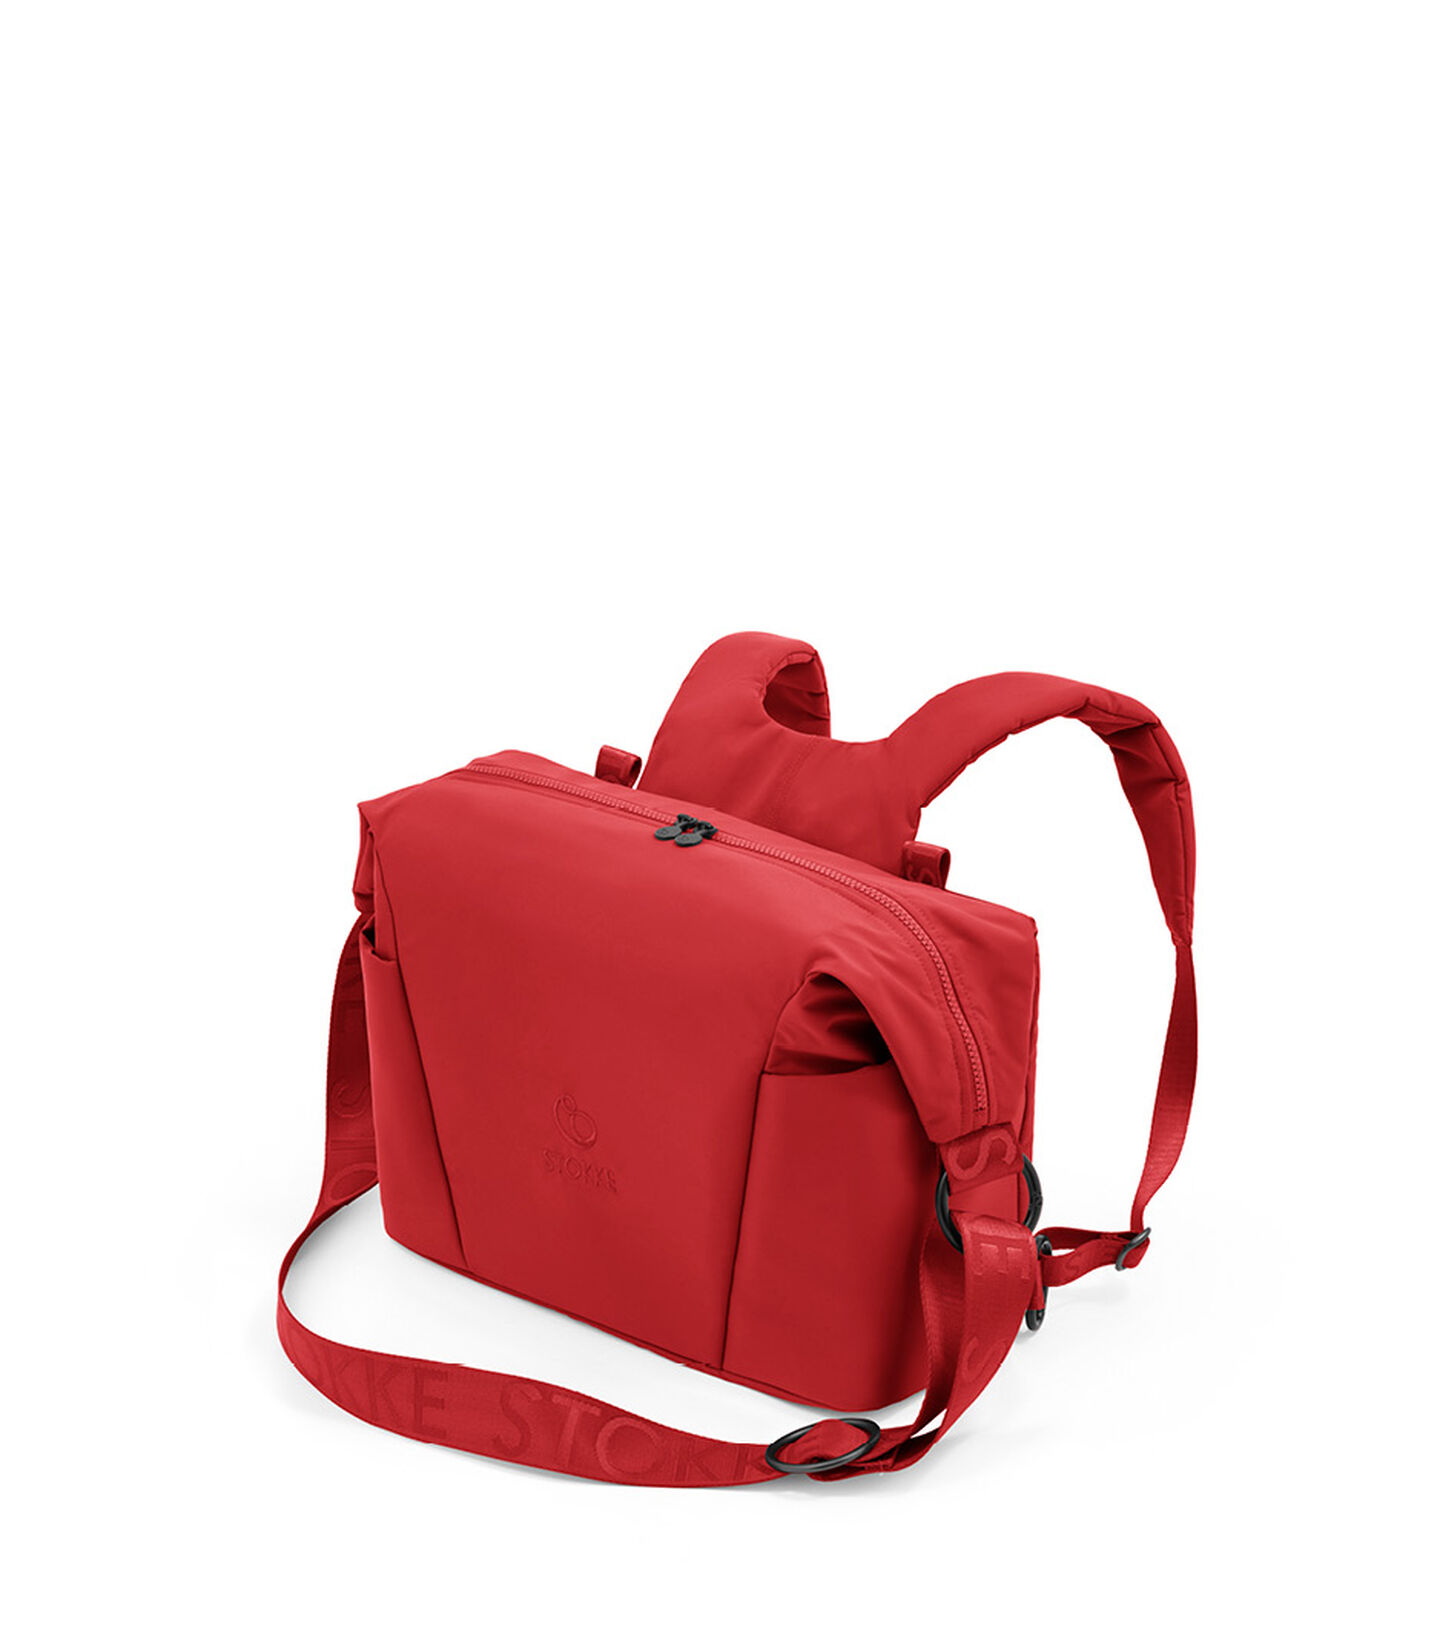 Stokke® Xplory® X Changing bag Ruby Red, Ruby Red, mainview view 2